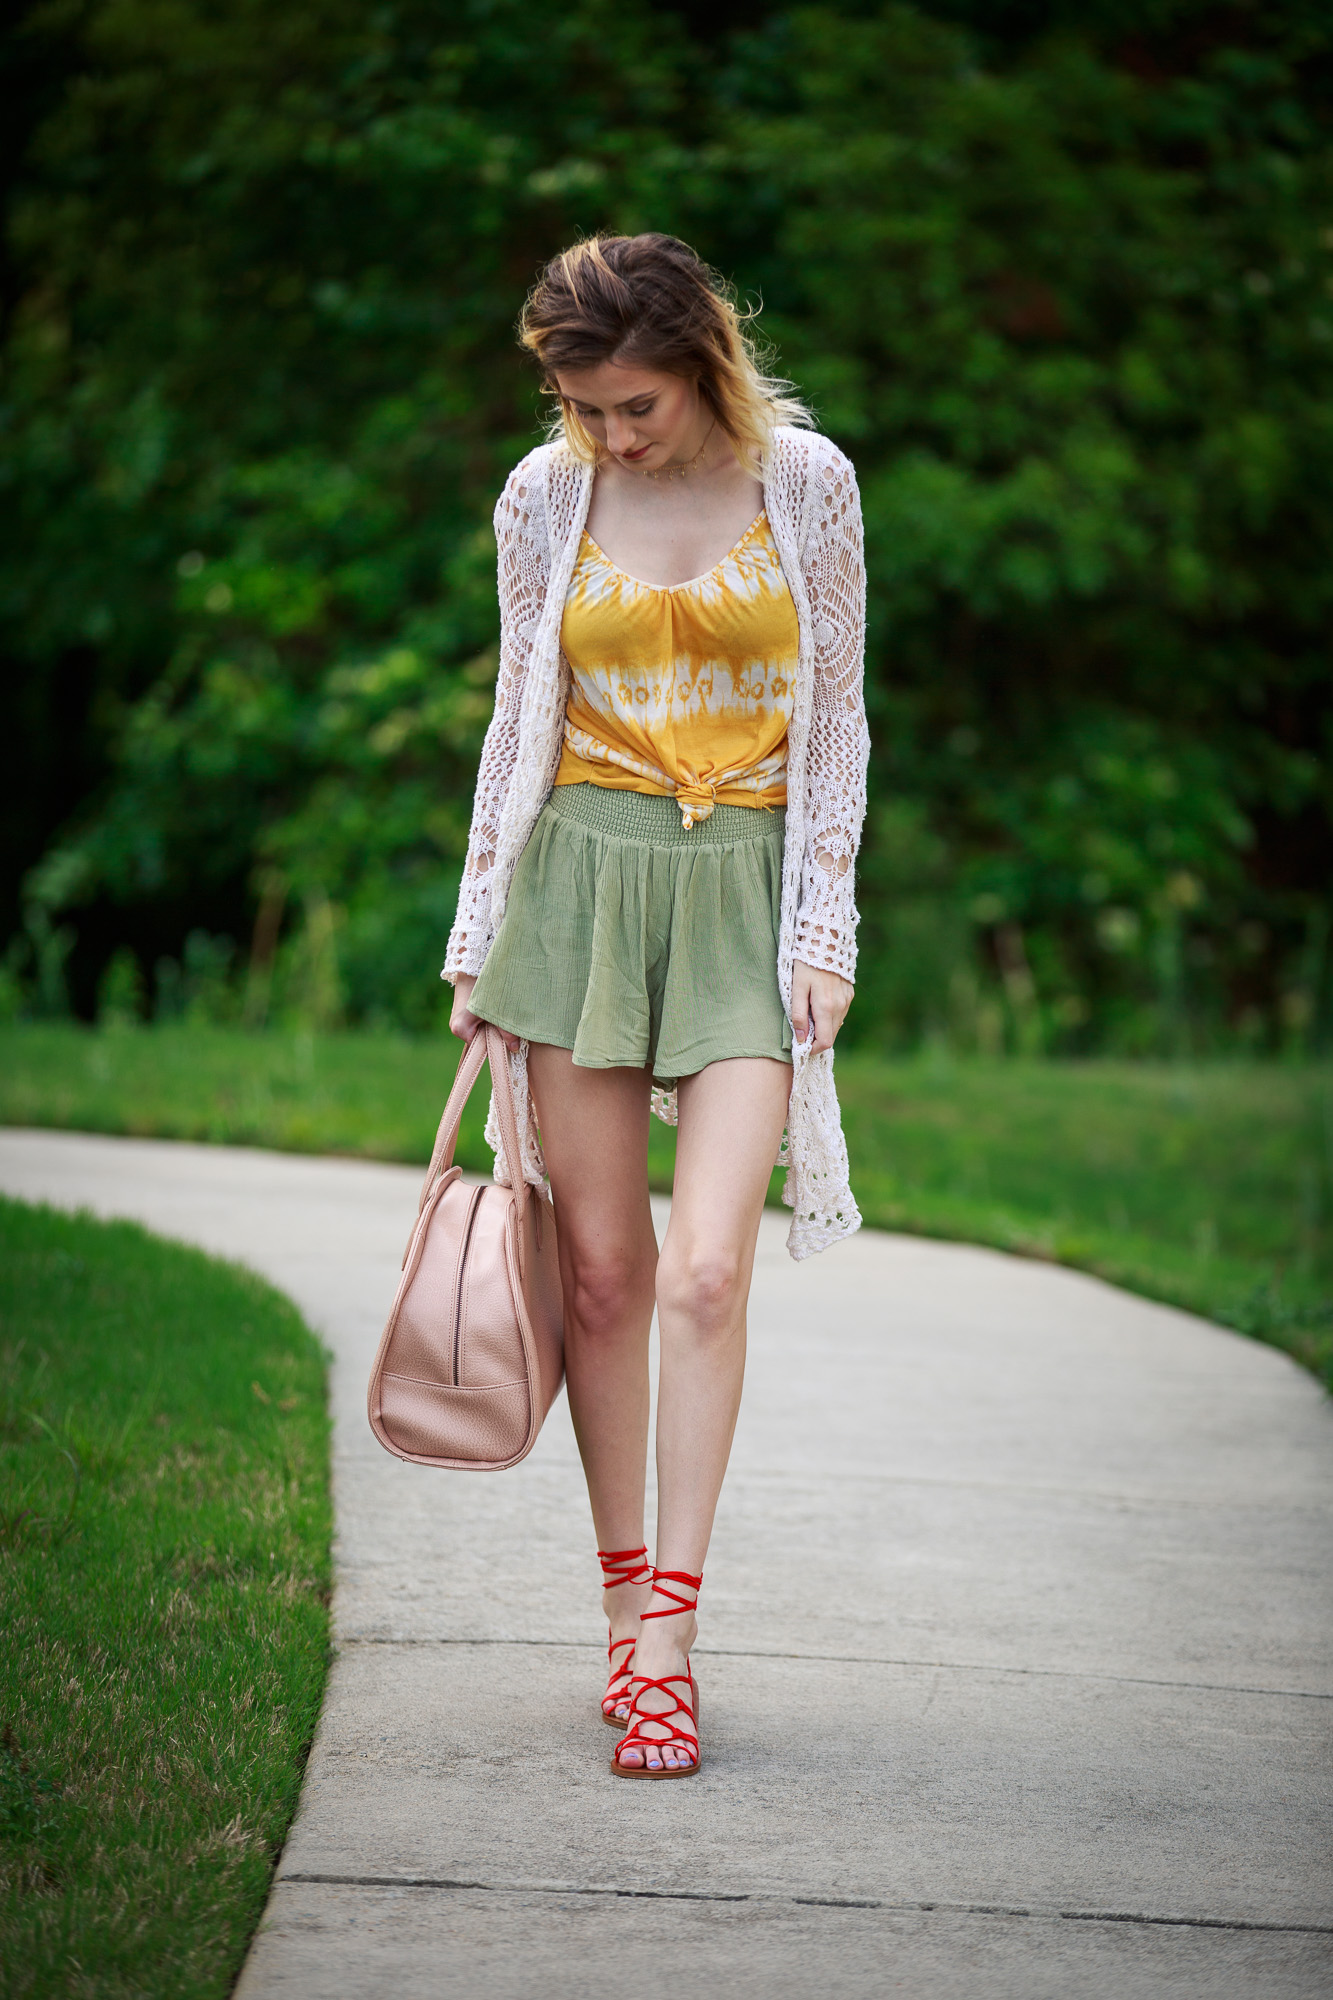 Fashion blogger Jessica Linn from Linn Style wearing Forever21 olive colored shorts an H and M tank top tied at the waist, and white knit cardigan, Forever21 scrappy sandals, and carrying a faux leather Matt and Nat purse.